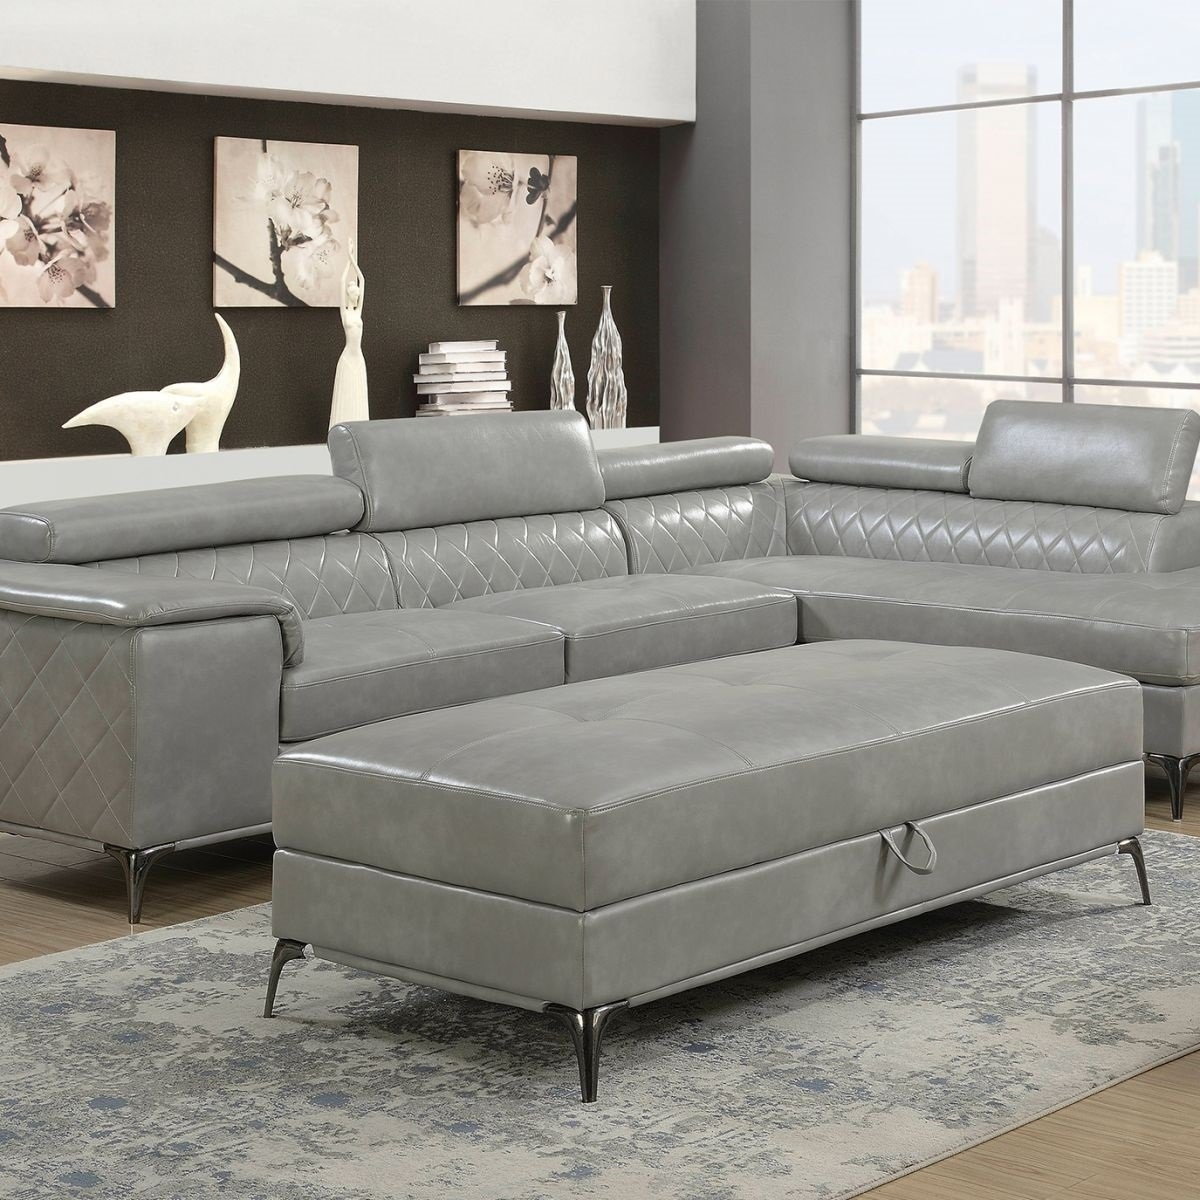 Worthington Grey 2 Pc Sectional & Ottoman | Badcock & More intended for Cosmos Grey 2 Piece Sectionals With Laf Chaise (Image 29 of 30)